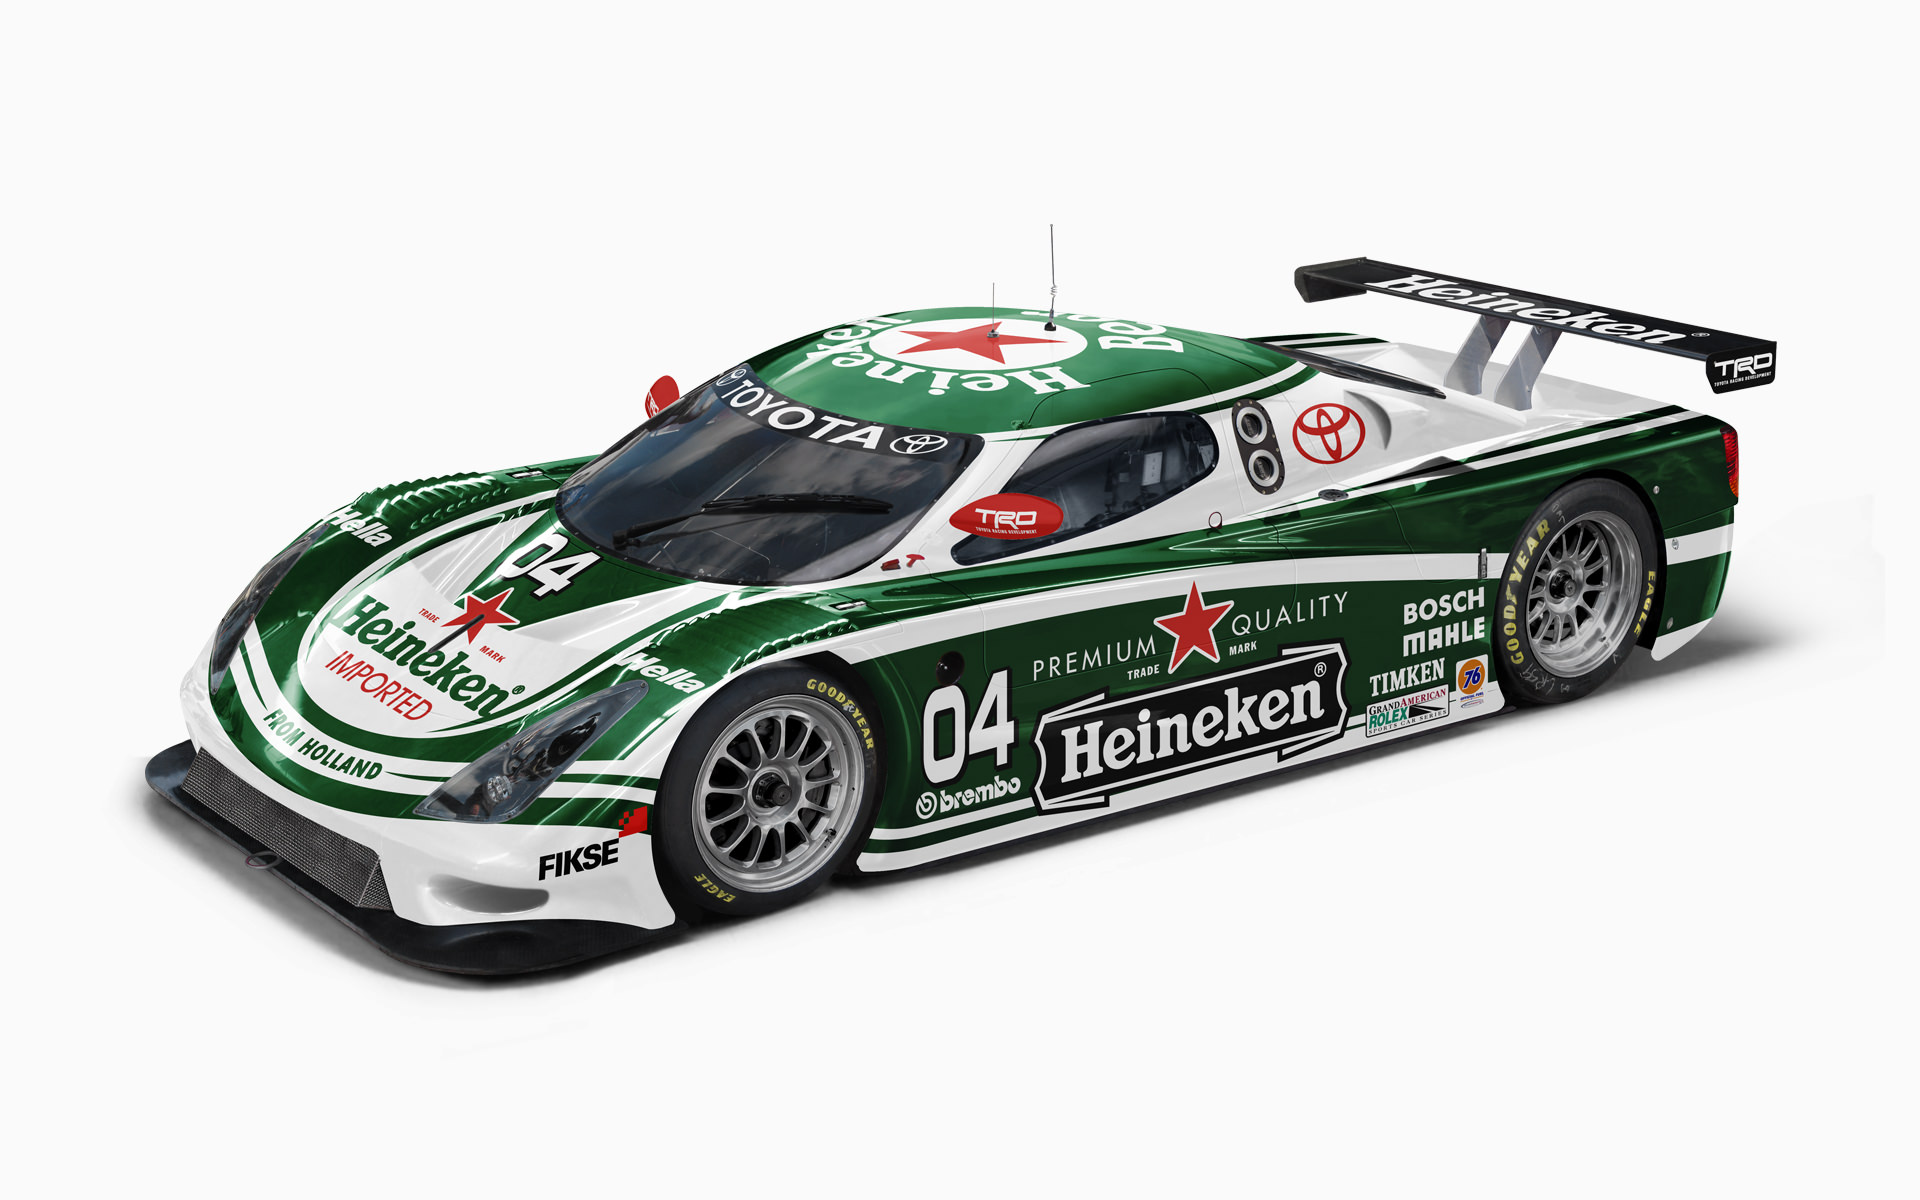 Toyota Racing Development Heineken Toyota FABCAR Daytona Prototype Livery Visualization